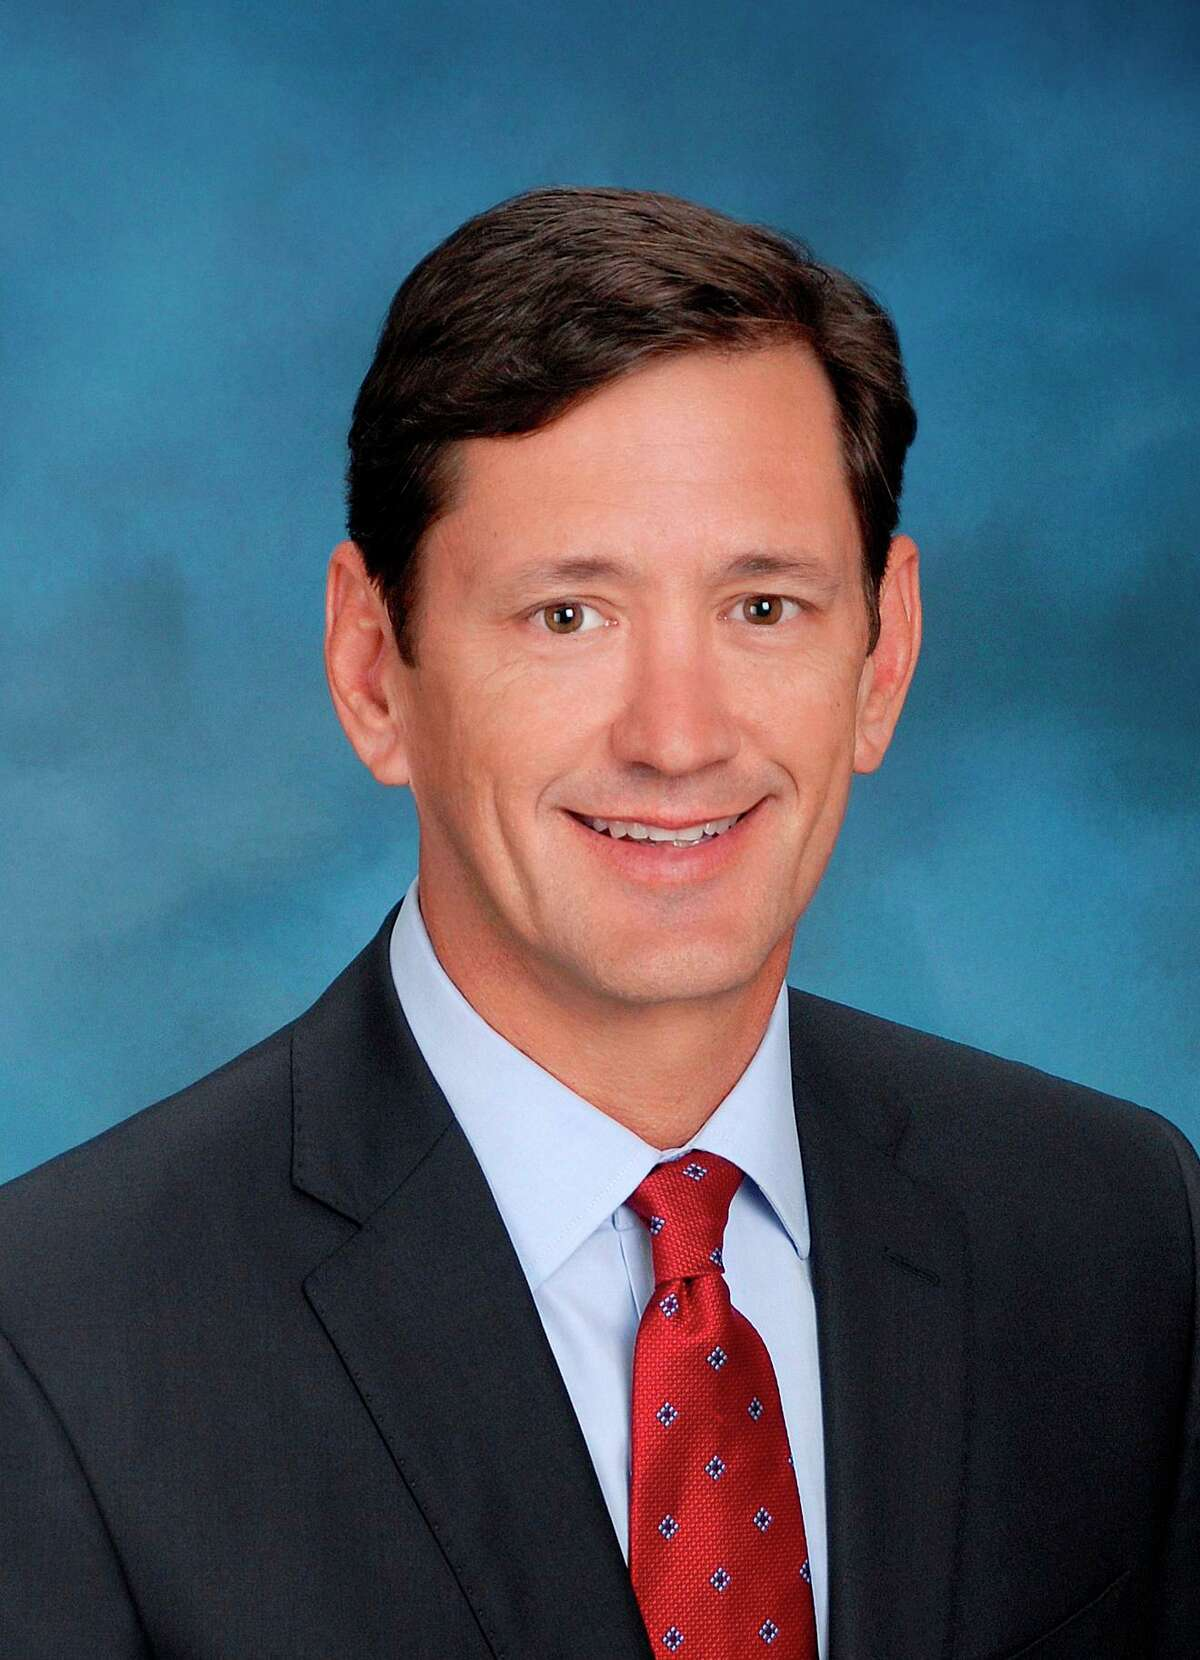 Wayne Peacock will become the first USAA CEO and president who doesn't have a military background.